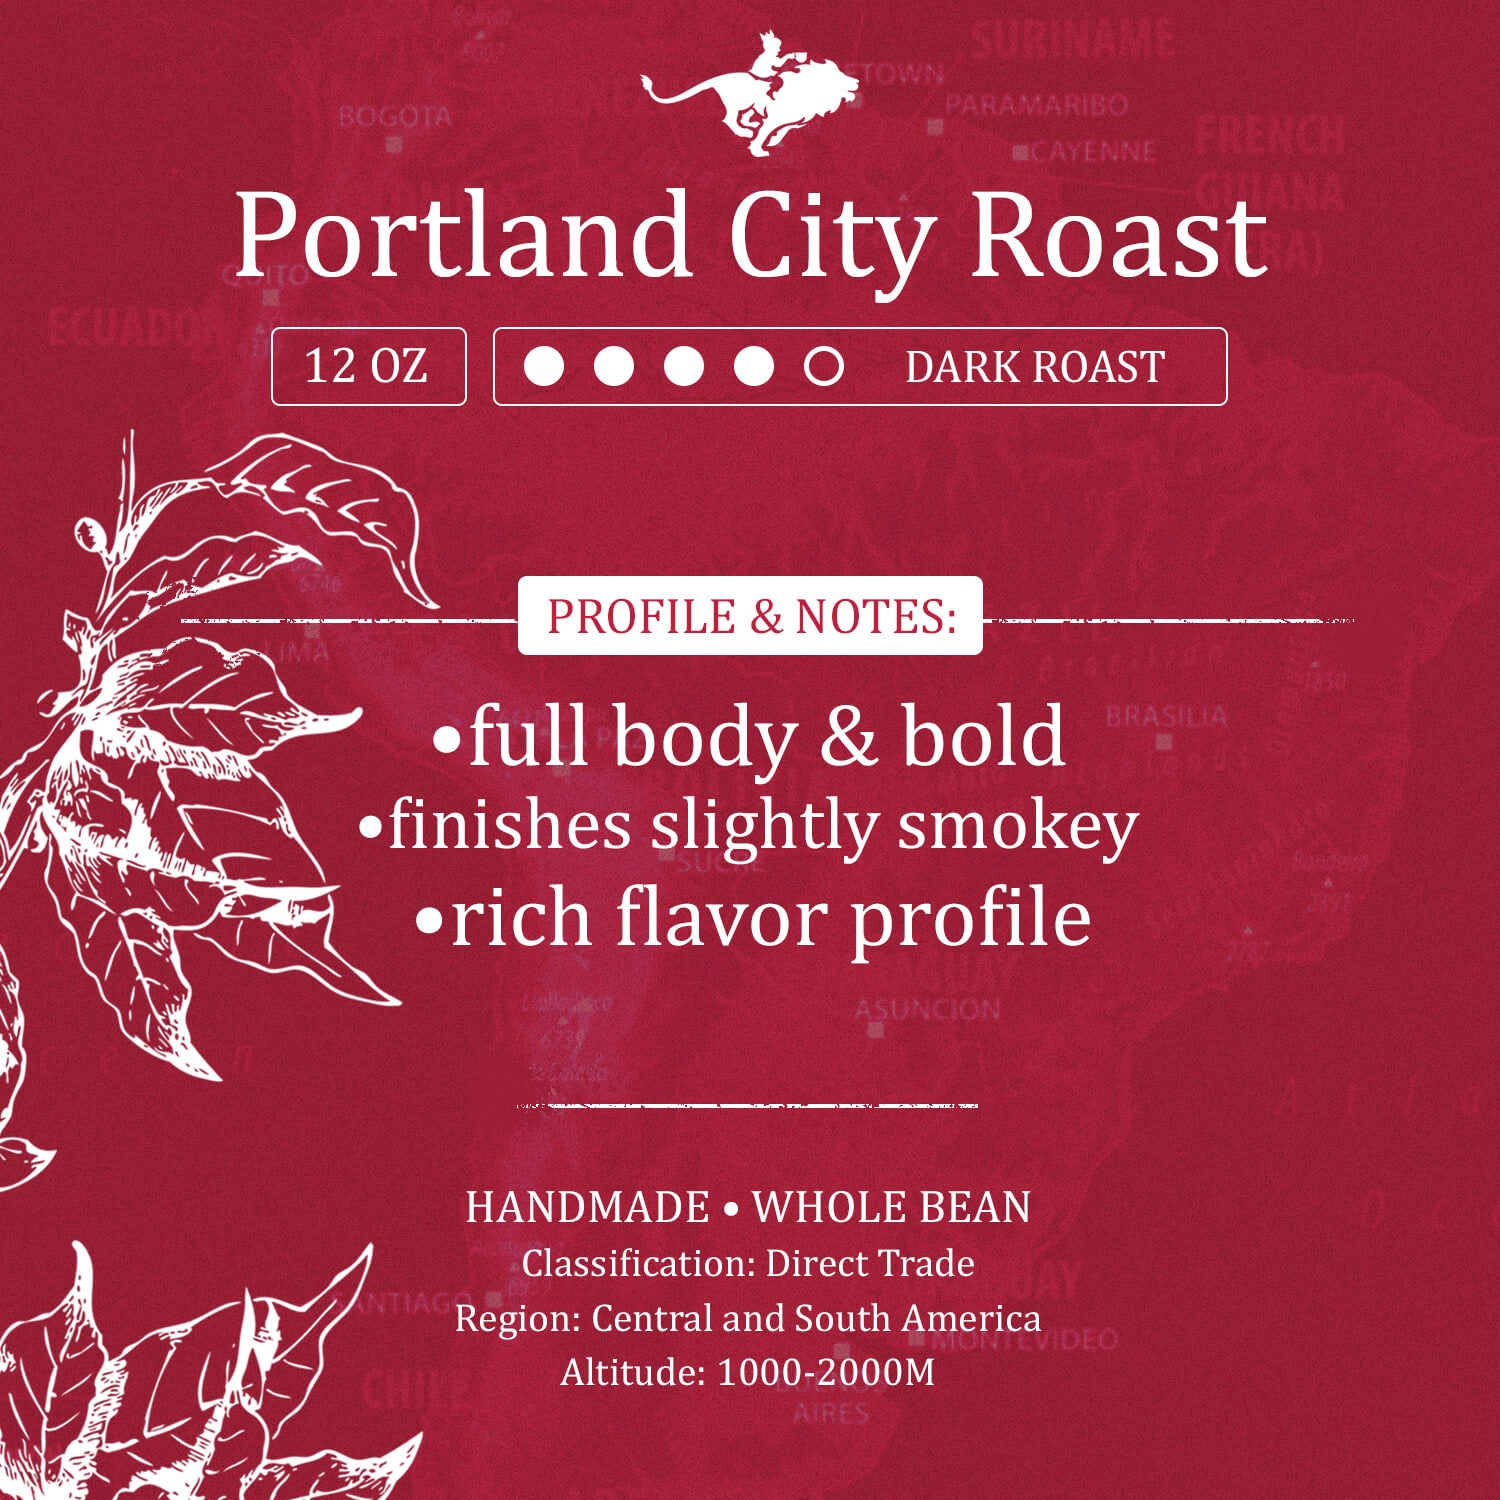 Portland City Roast - Douglas Coffee